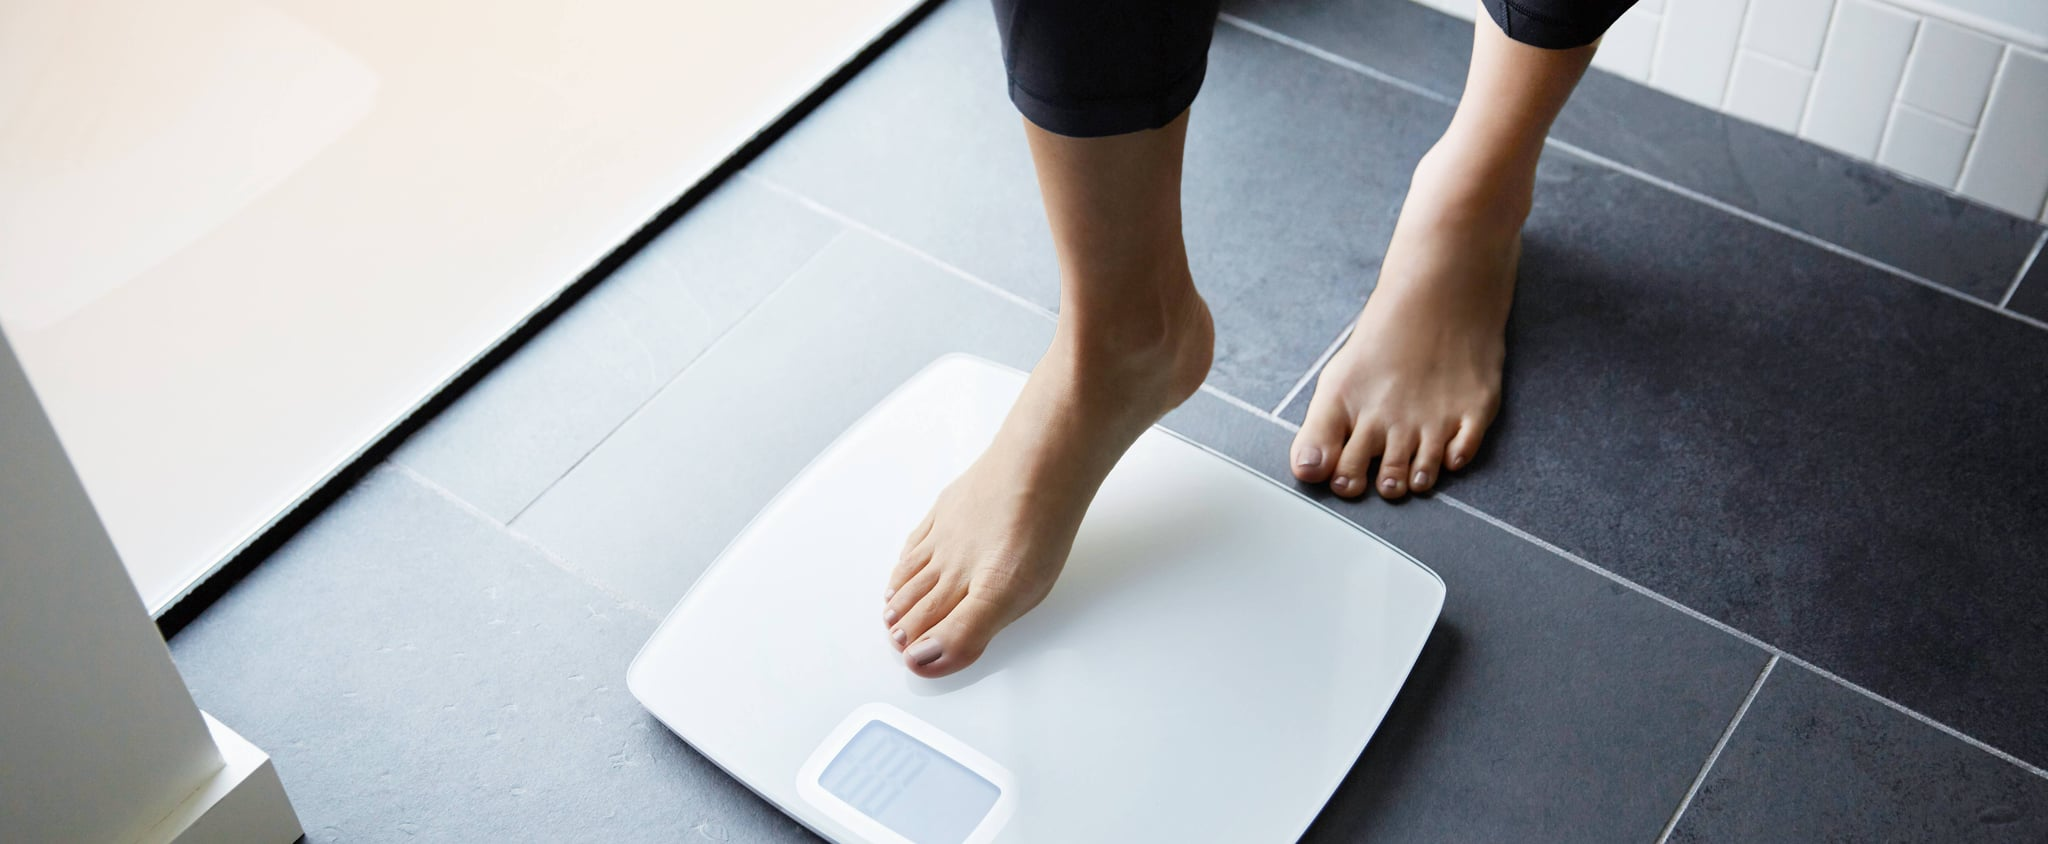 How to Lose Weight in 2 Months